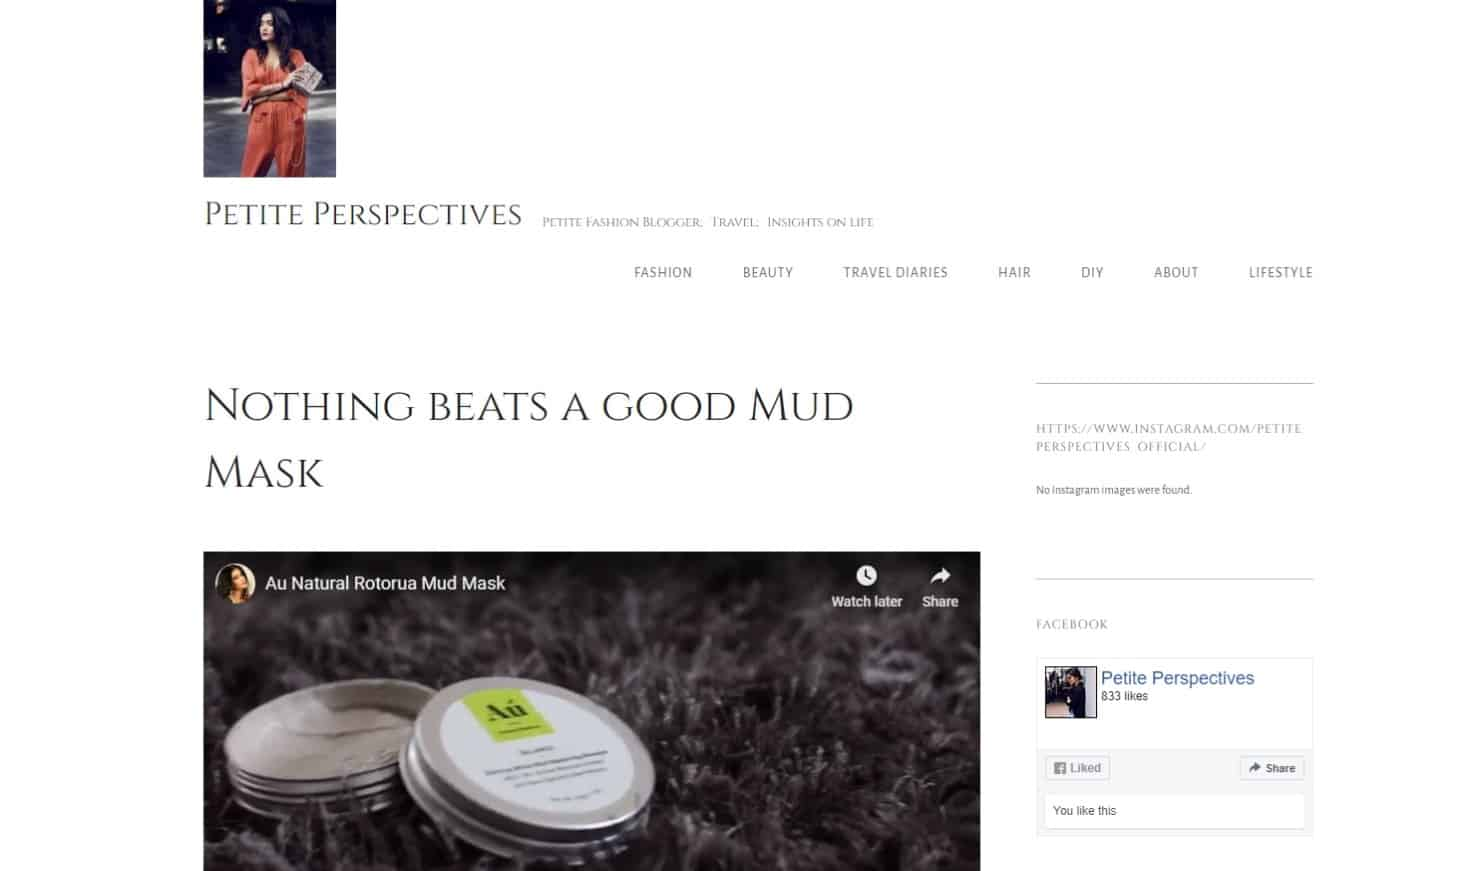 Petite Perspectives - Au Natural Skinfood Mud Masque Article